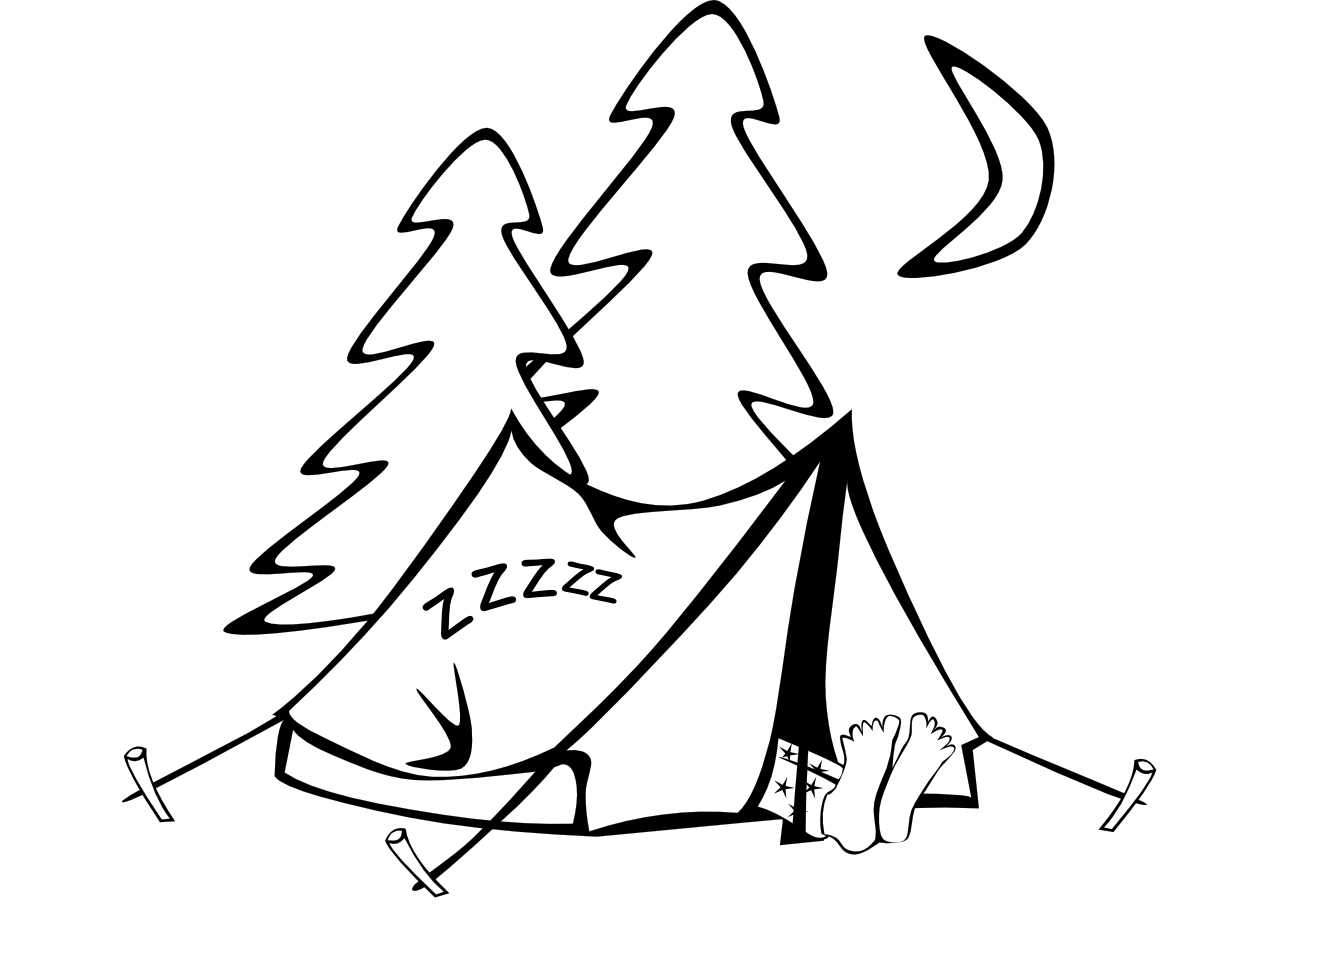 Drawn campire tent Images Free Tent tent%20and%20campfire%20clipart Clipart